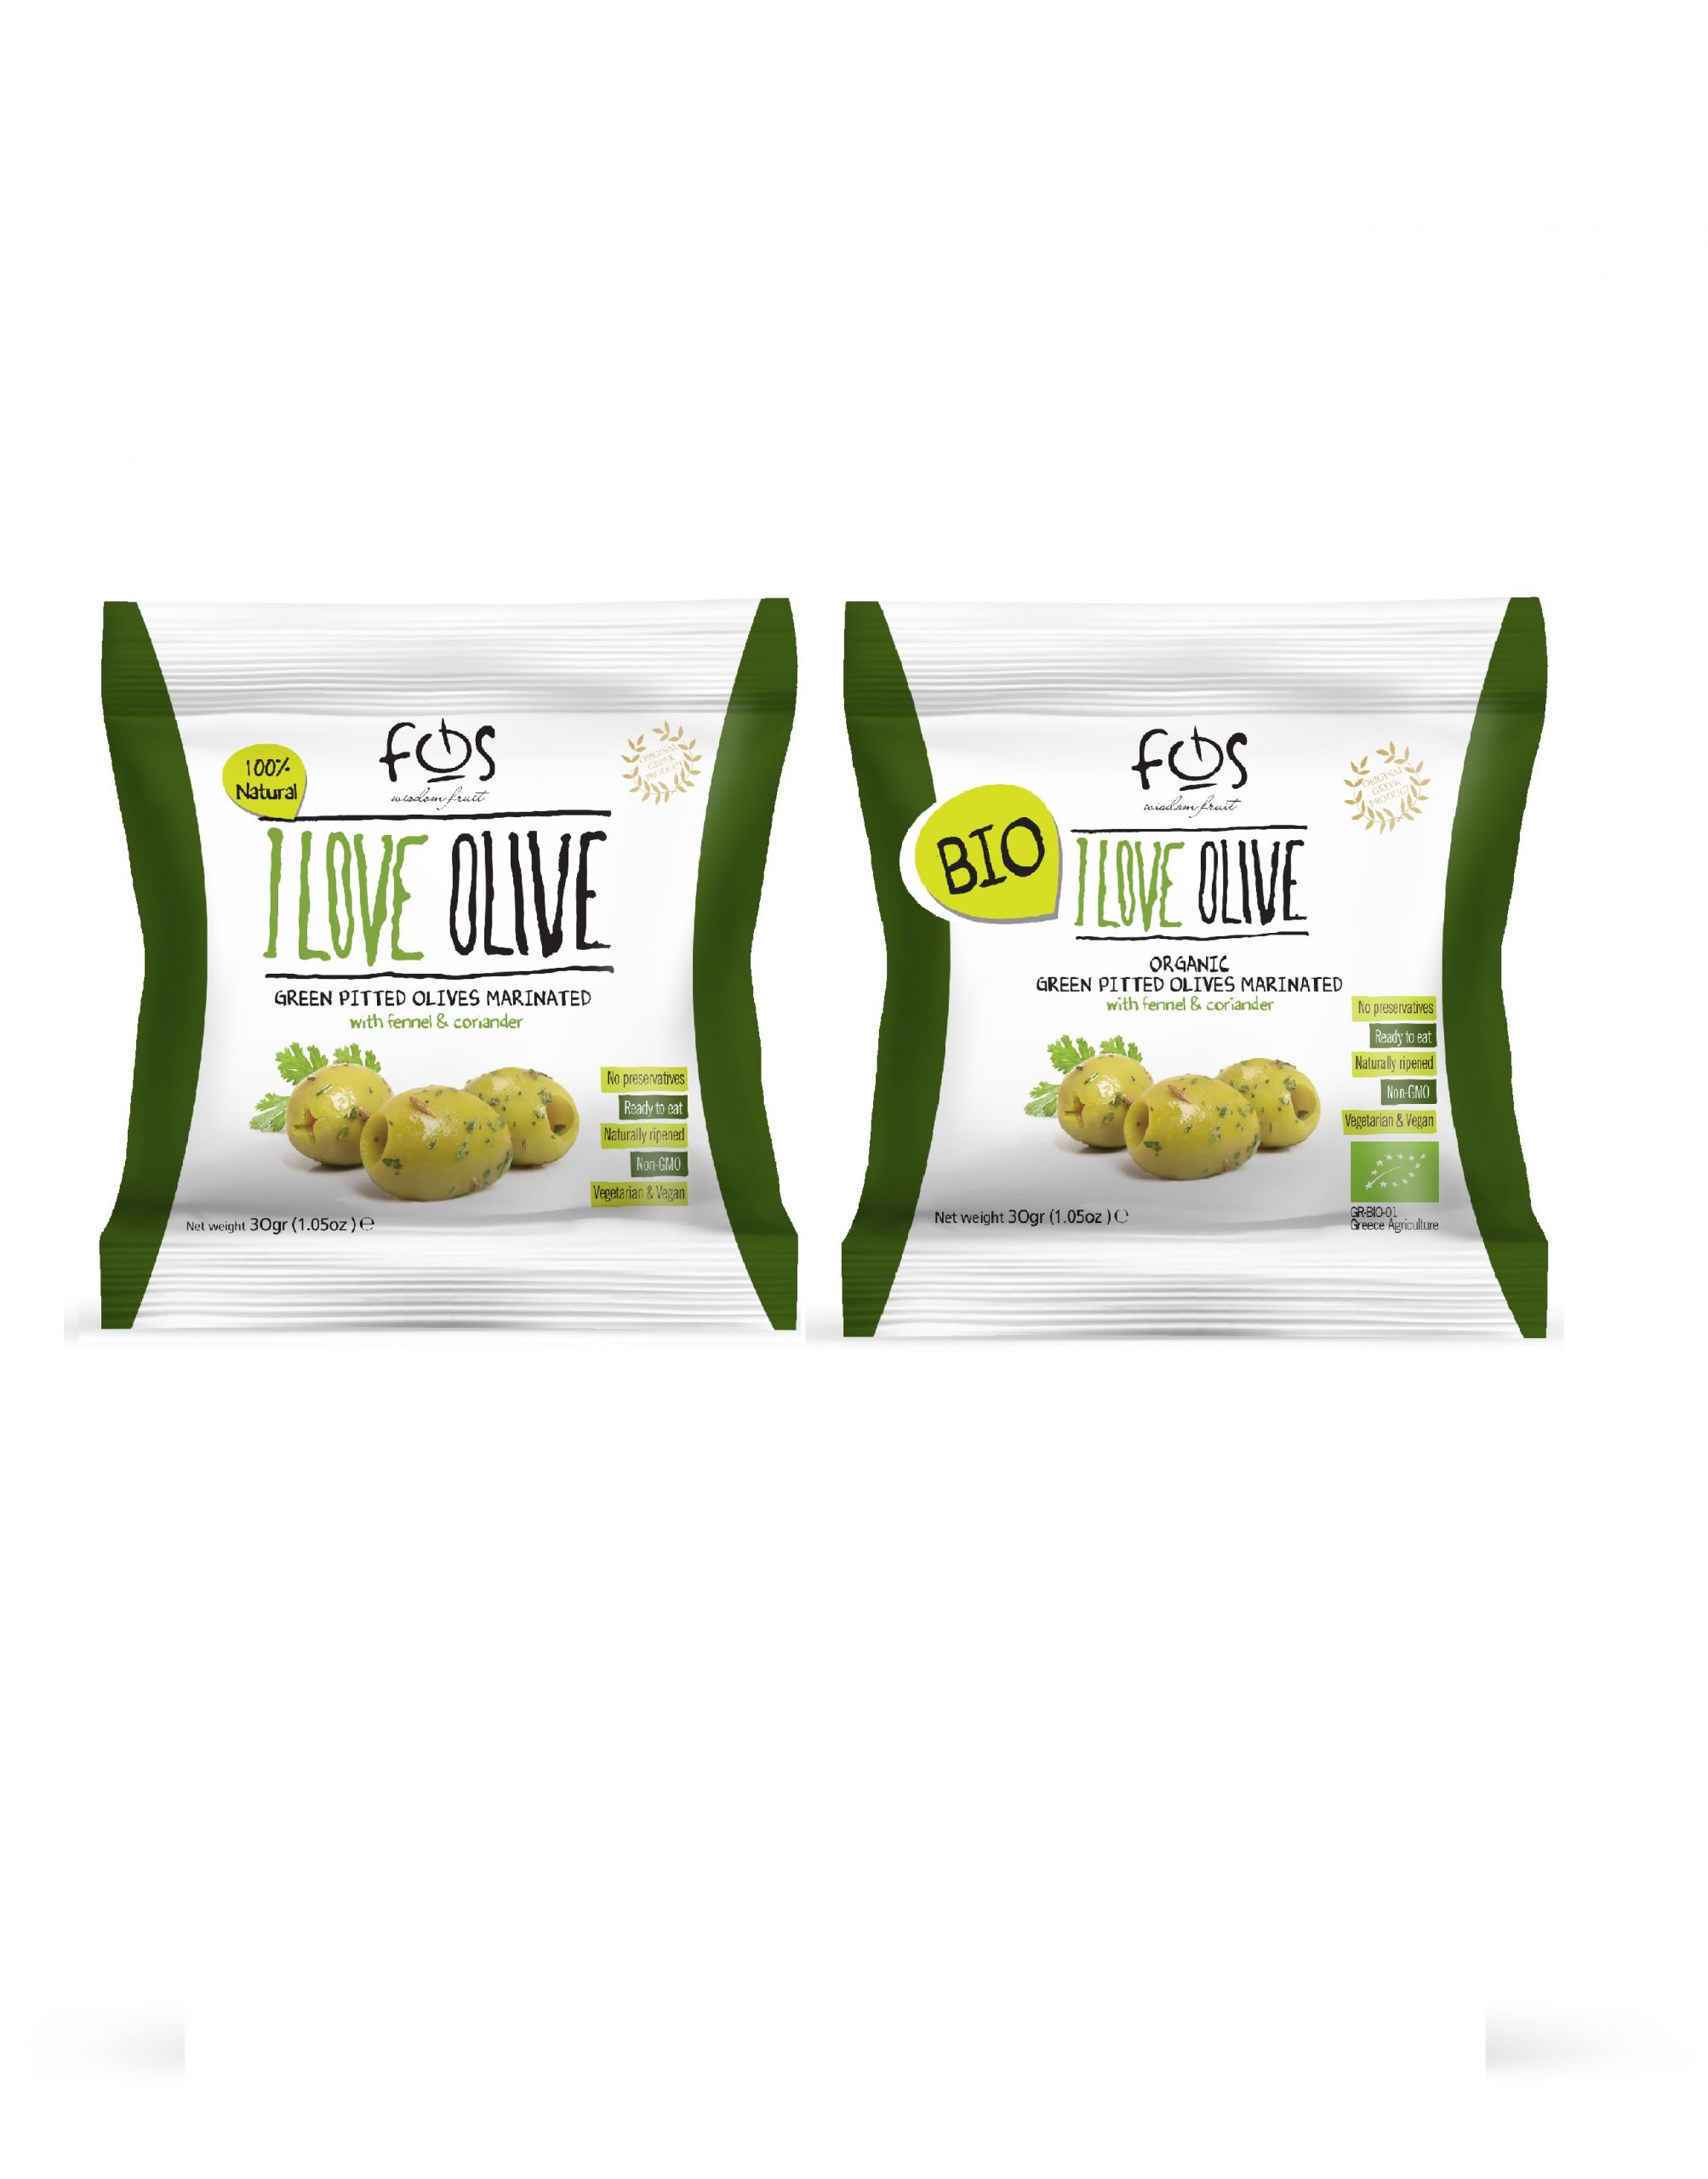 FOS –Greek Green marinated olives with fennel and coriander – pillowbag 30 gr and BIO 30 gr